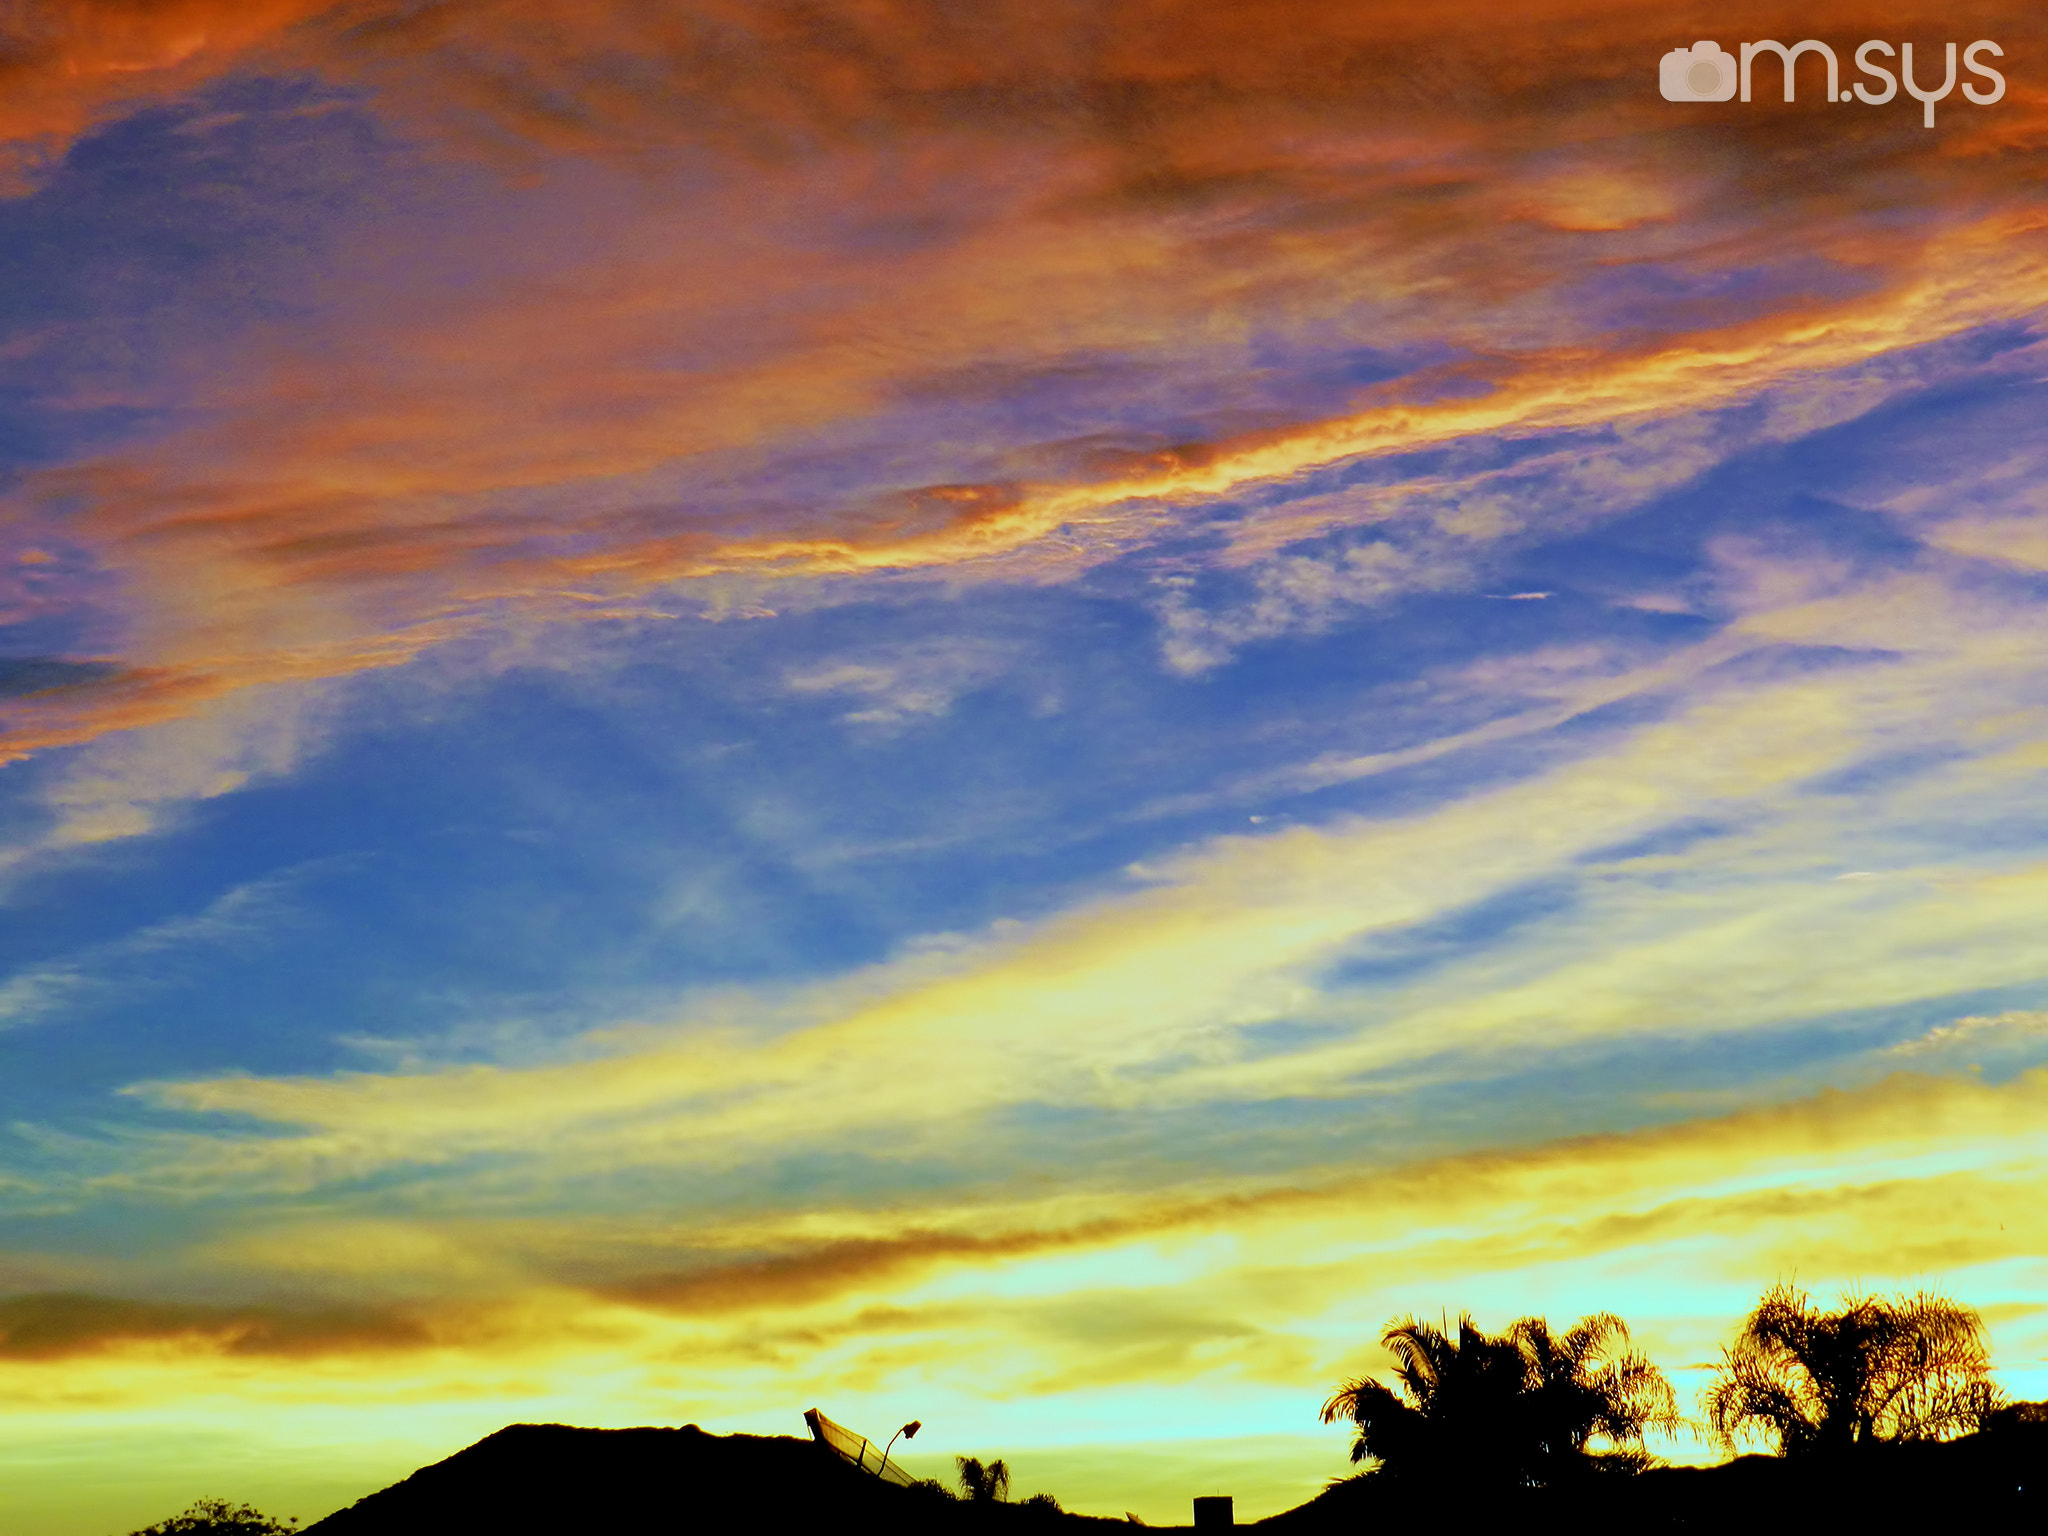 Photograph Sunset Sky in Itapema by Mauro Clemente on 500px